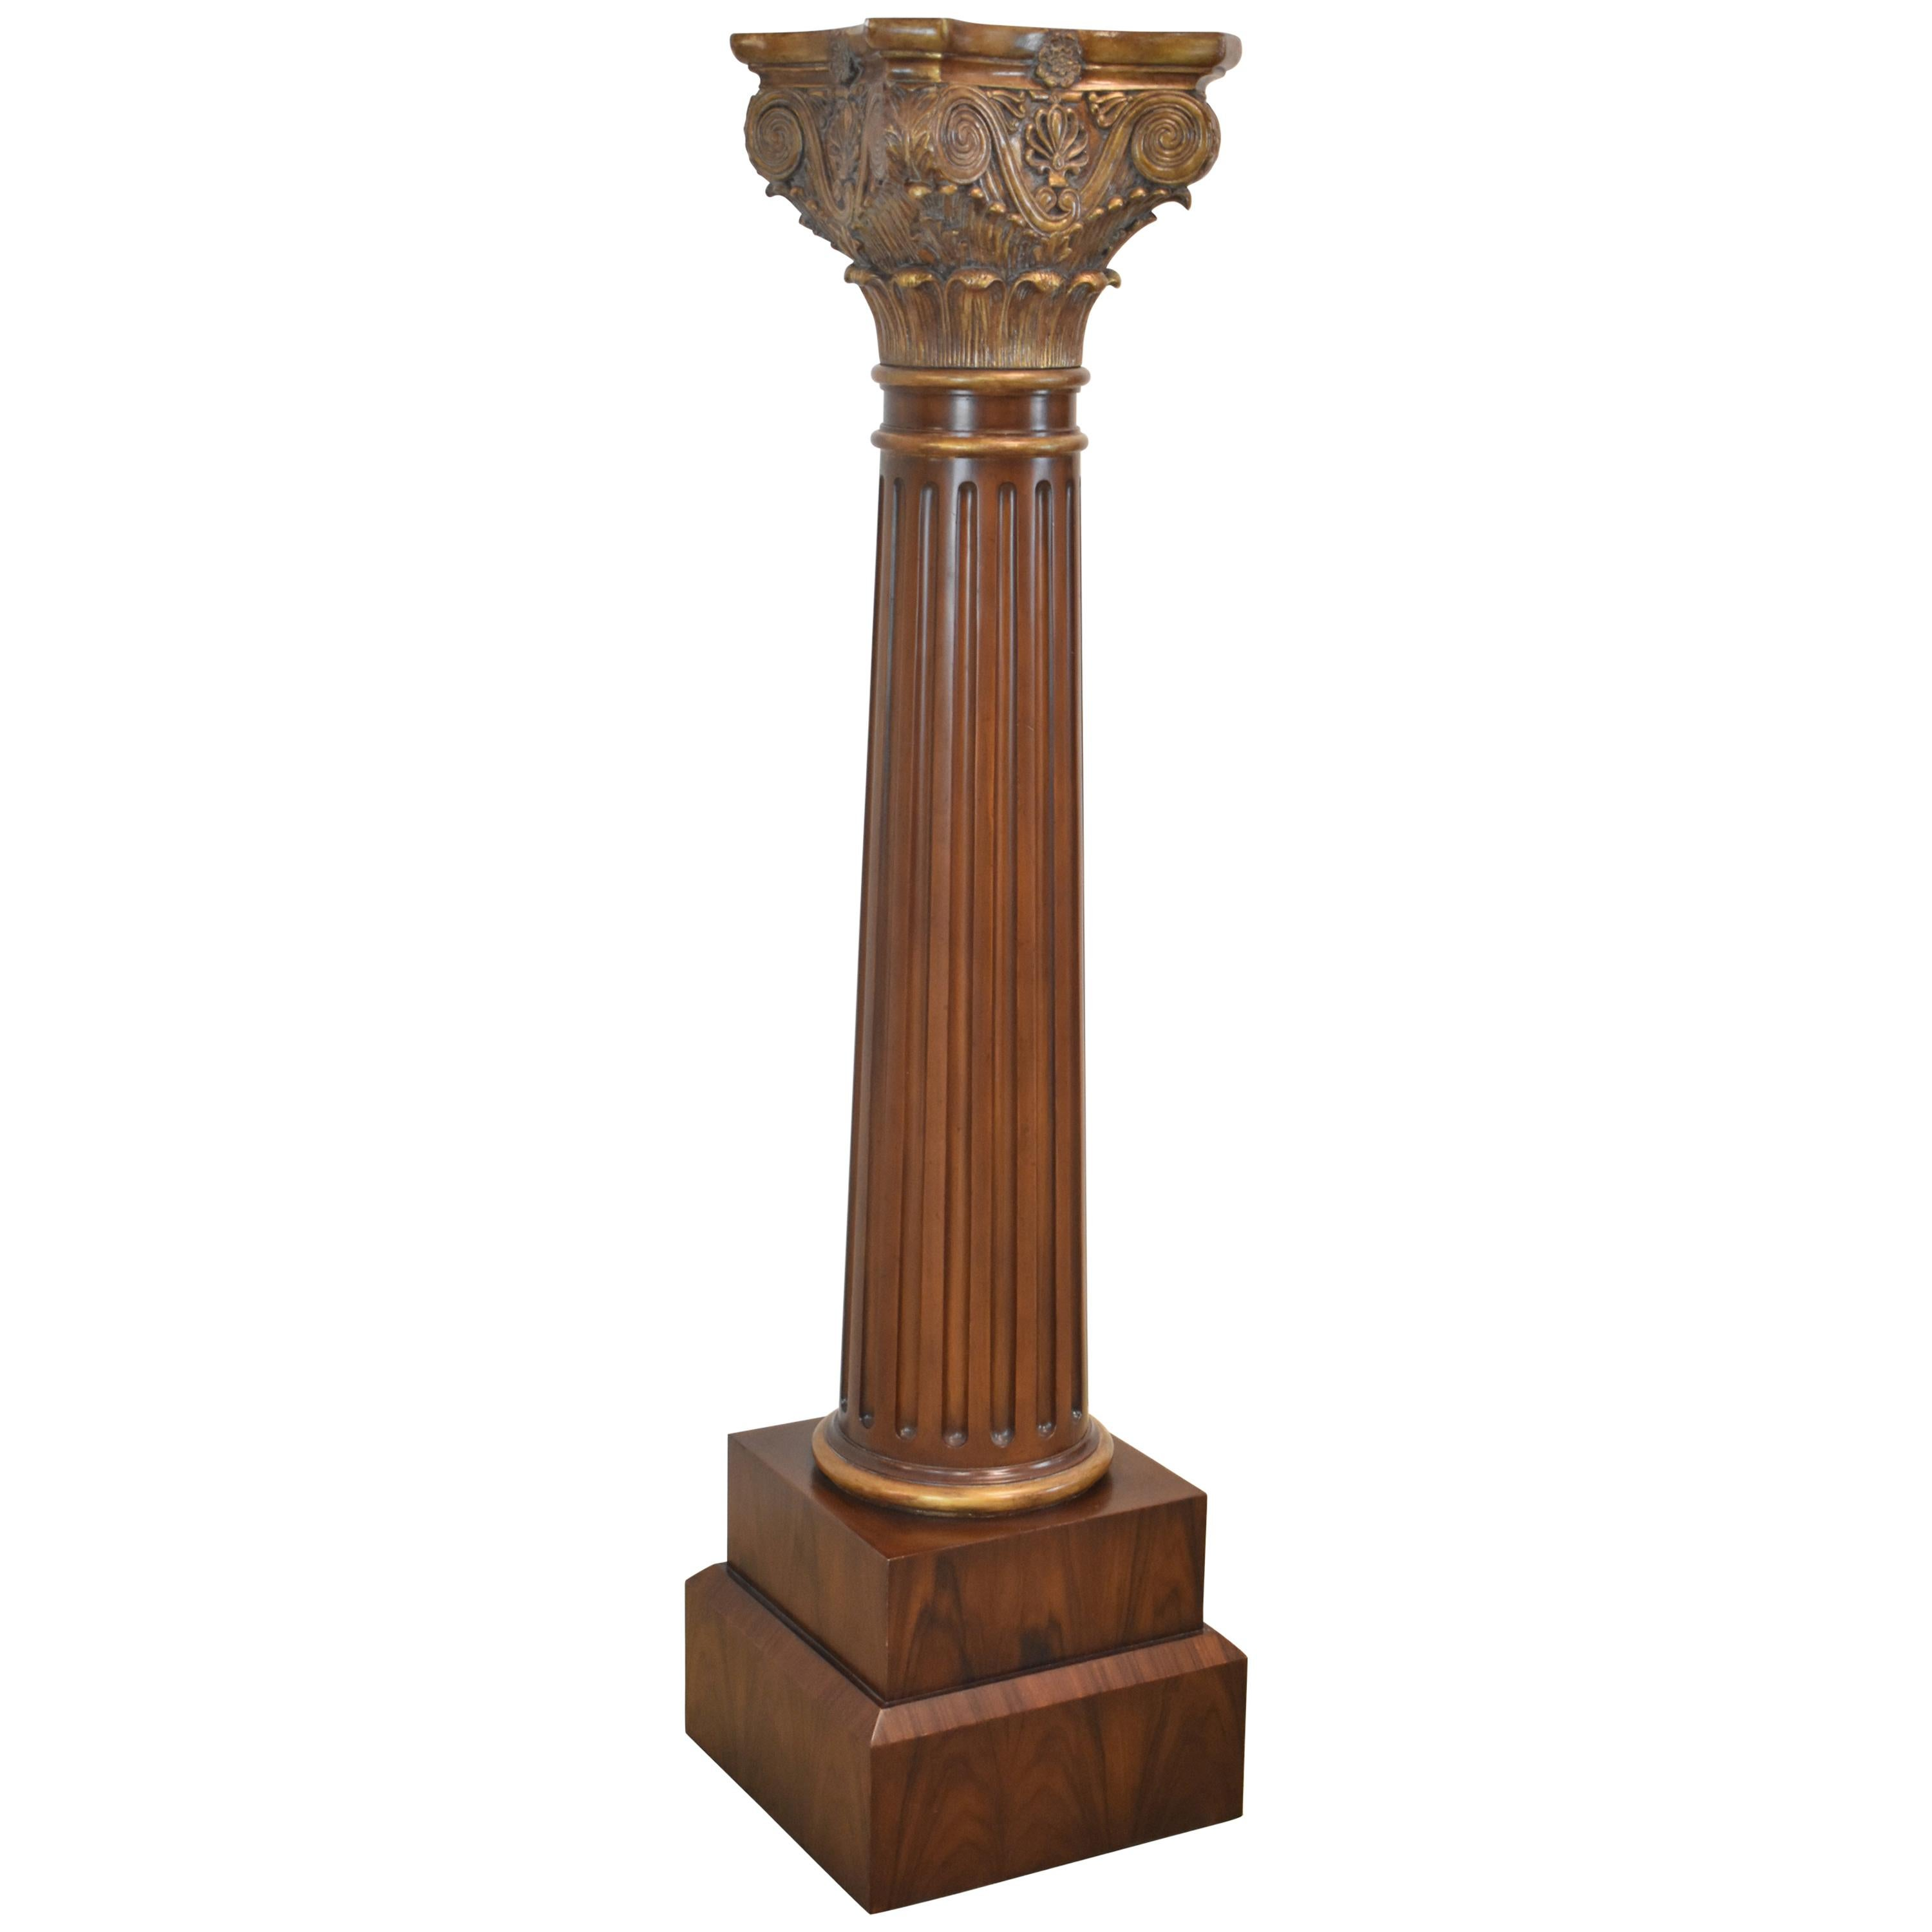 Maitland Smith Neoclassical Fluted Column / Pedestal / Plant Stand Carved Burle